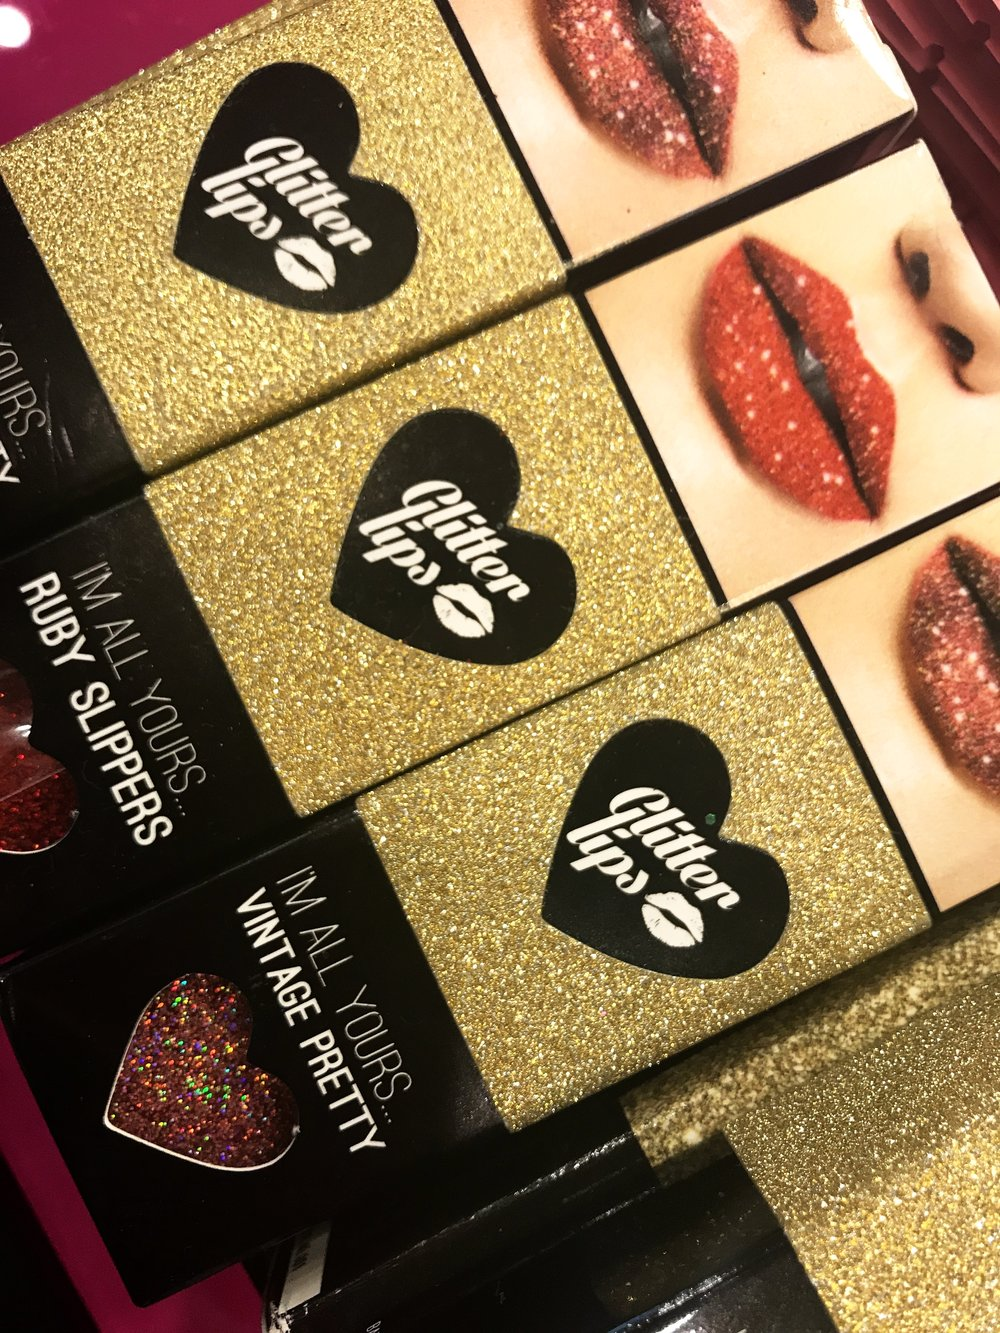 Glitter Lips by Beauty Boulevard £12.50